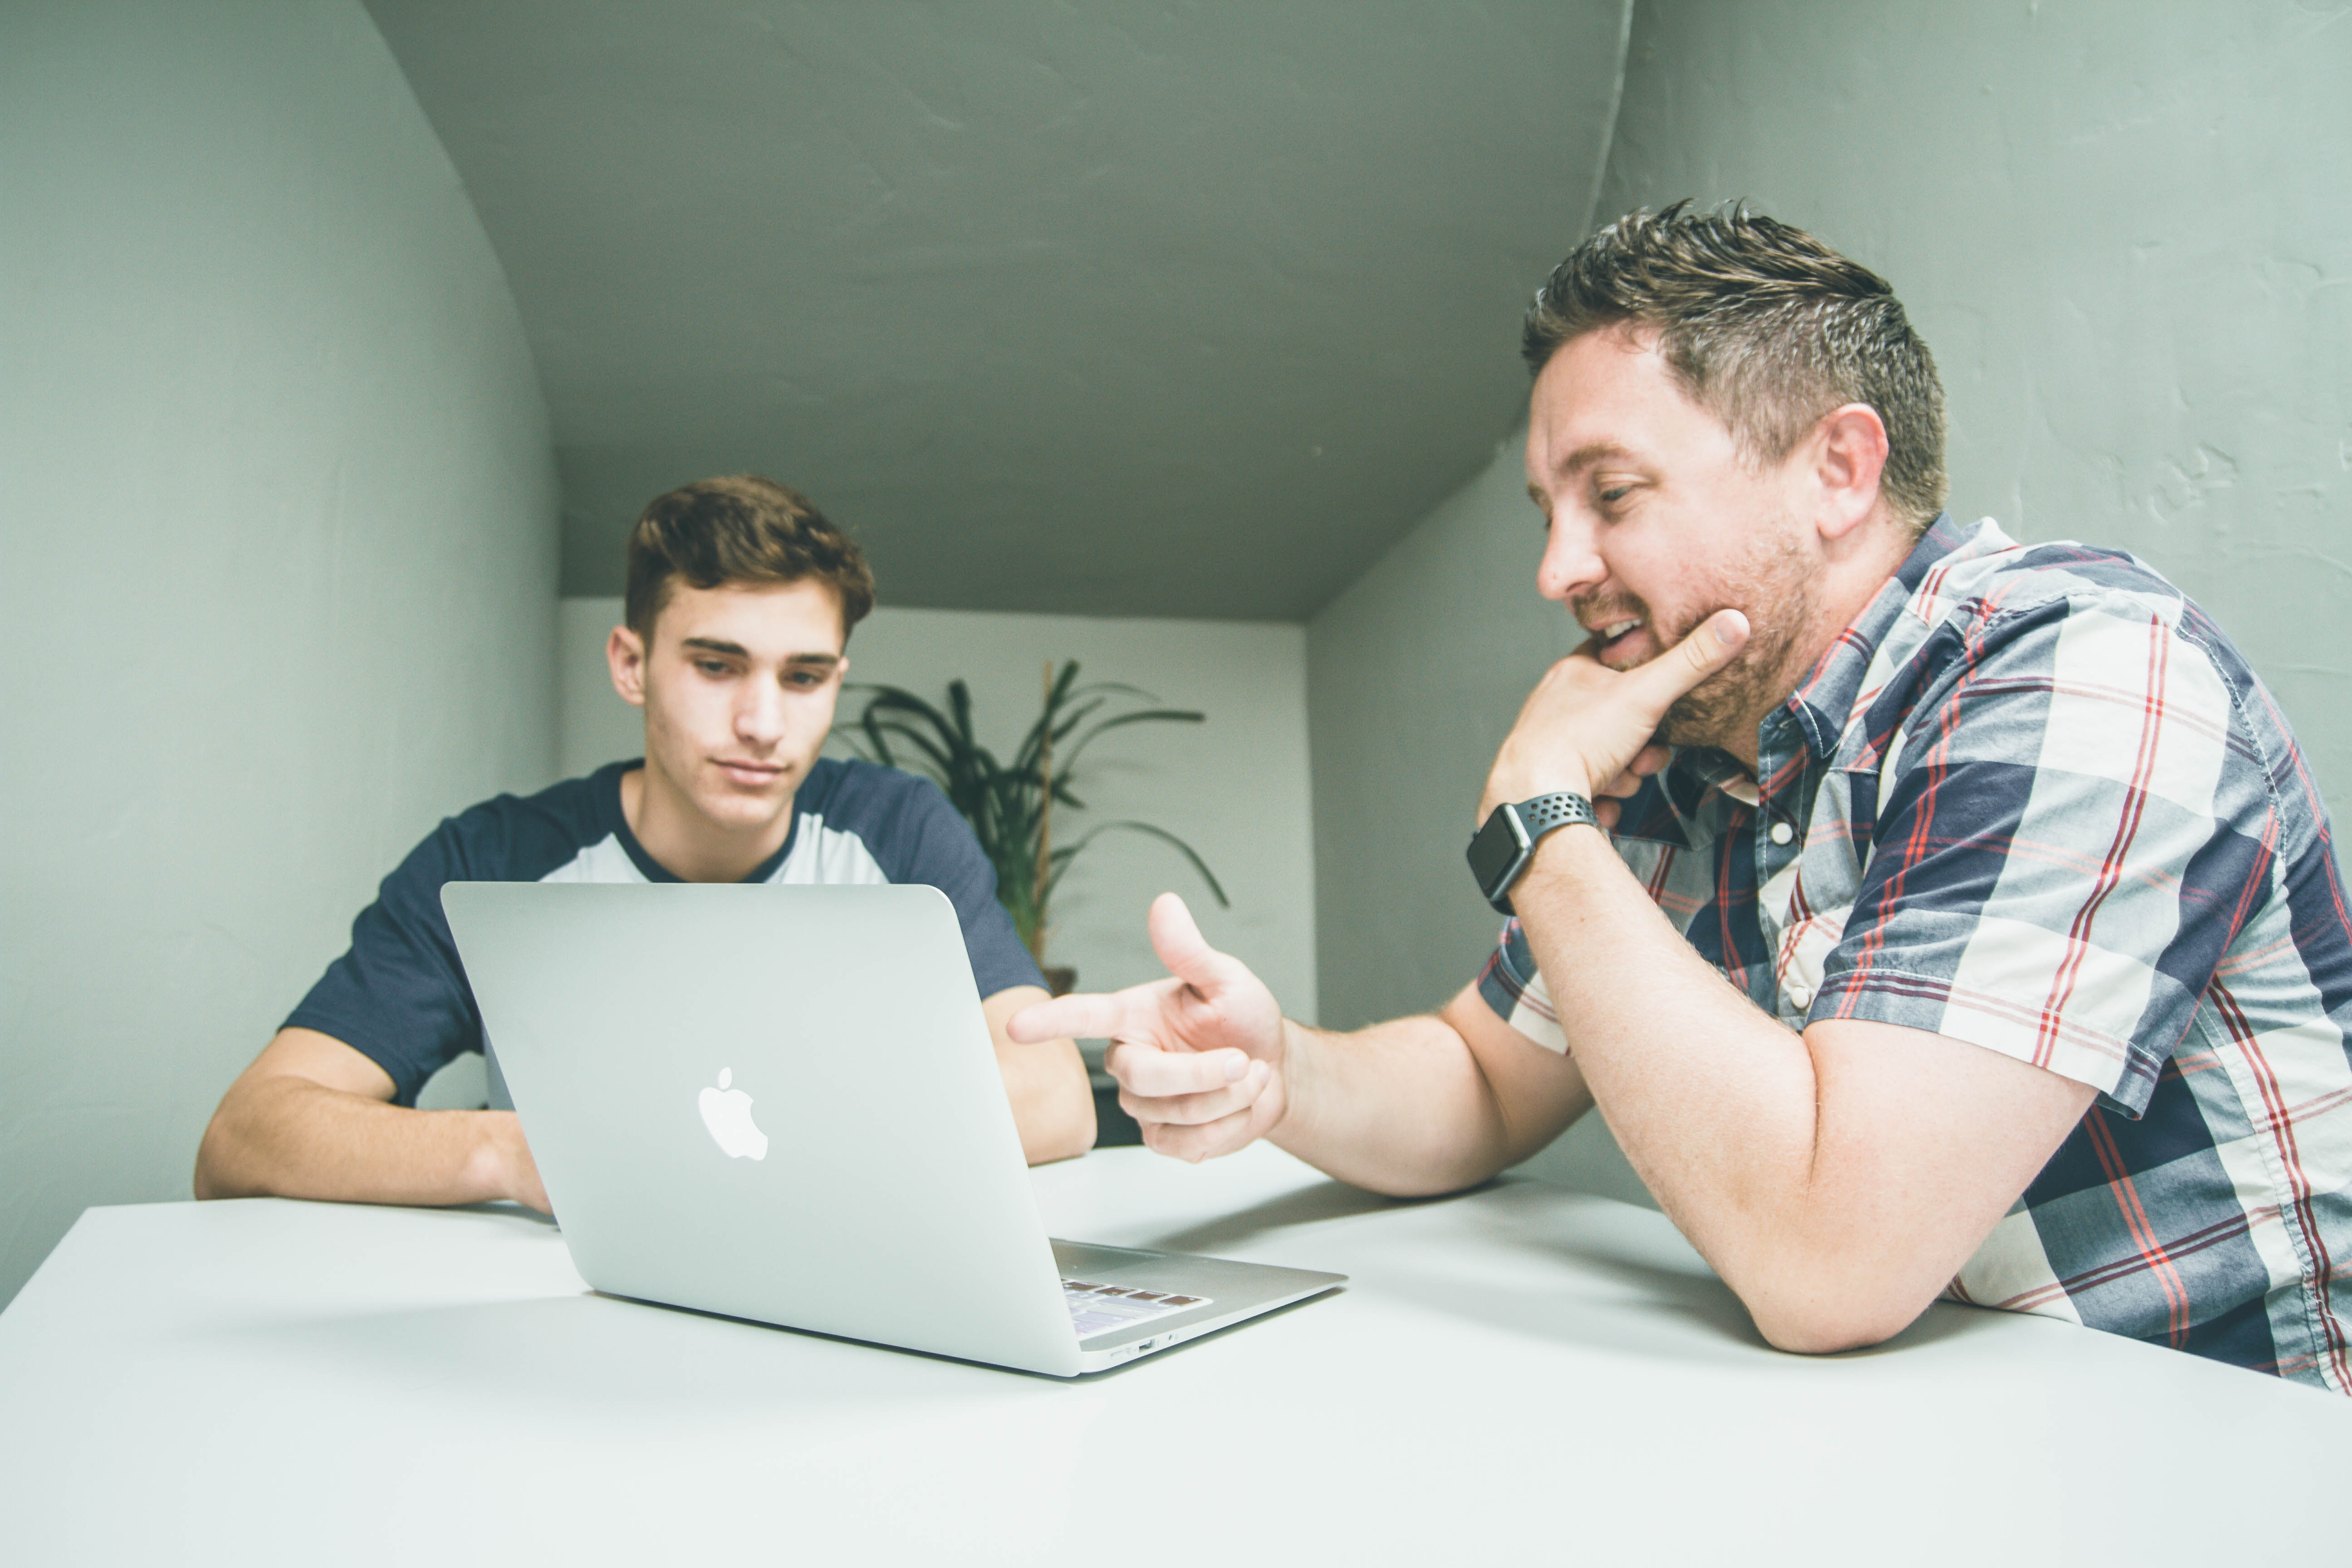 Man being tutored. Sell tutoring services online.